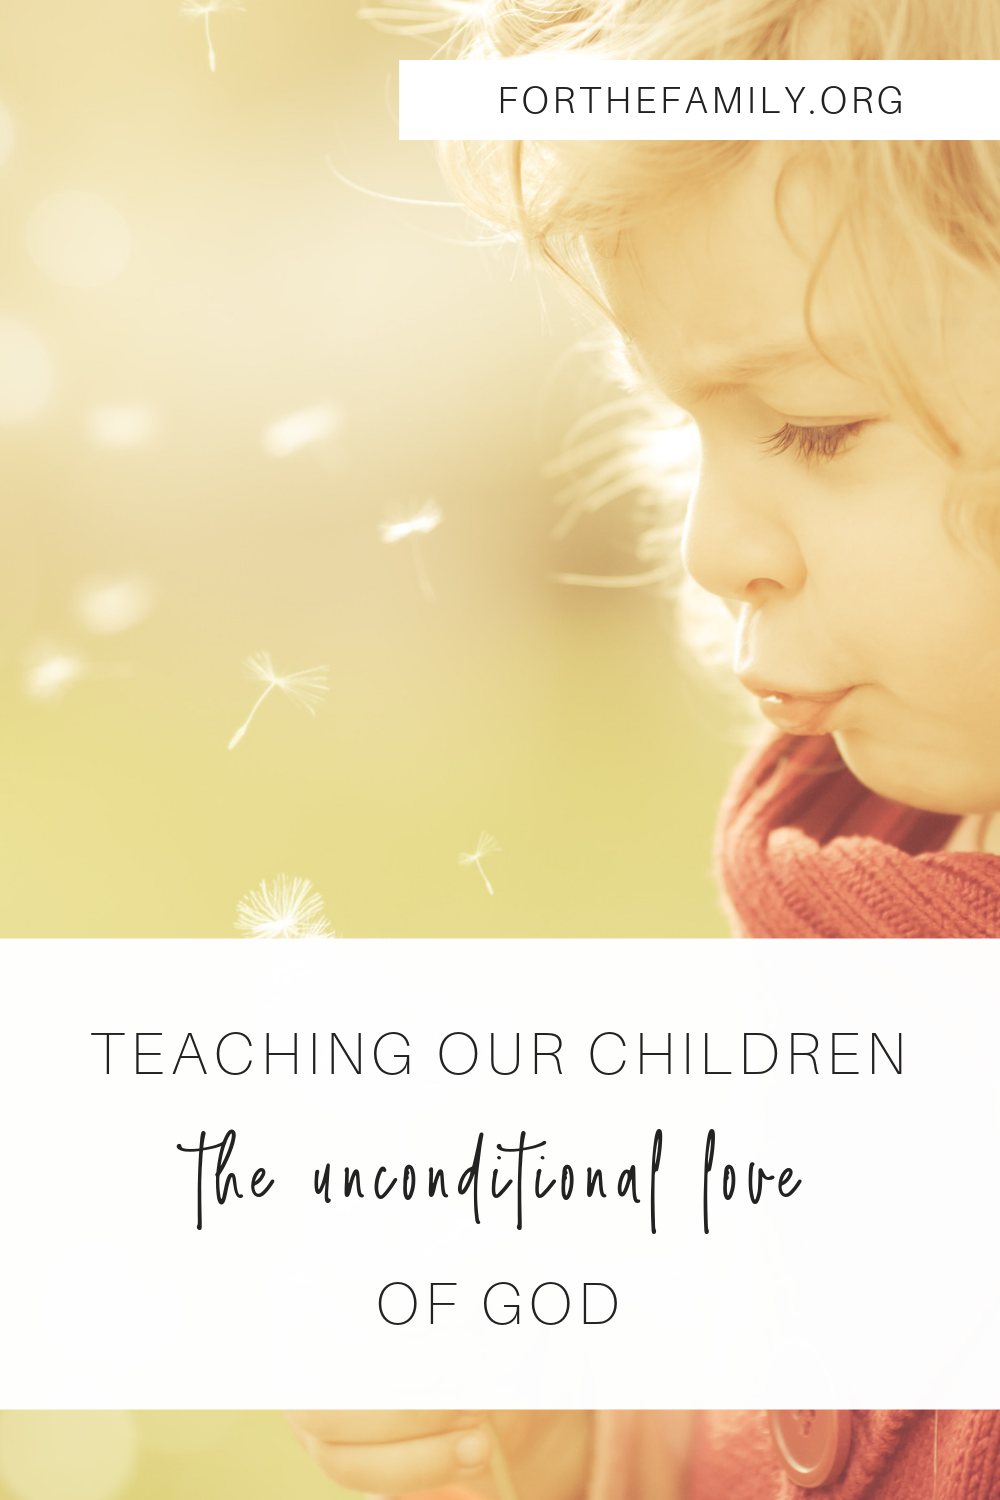 Our imperfect human love is no match for Gods perfect love for them. And as much as they need to know that we love them unconditionally, our kids need to know that God loves them, unconditionally, perfectly, just as they are! Come be inspired to share his heart with your family today.